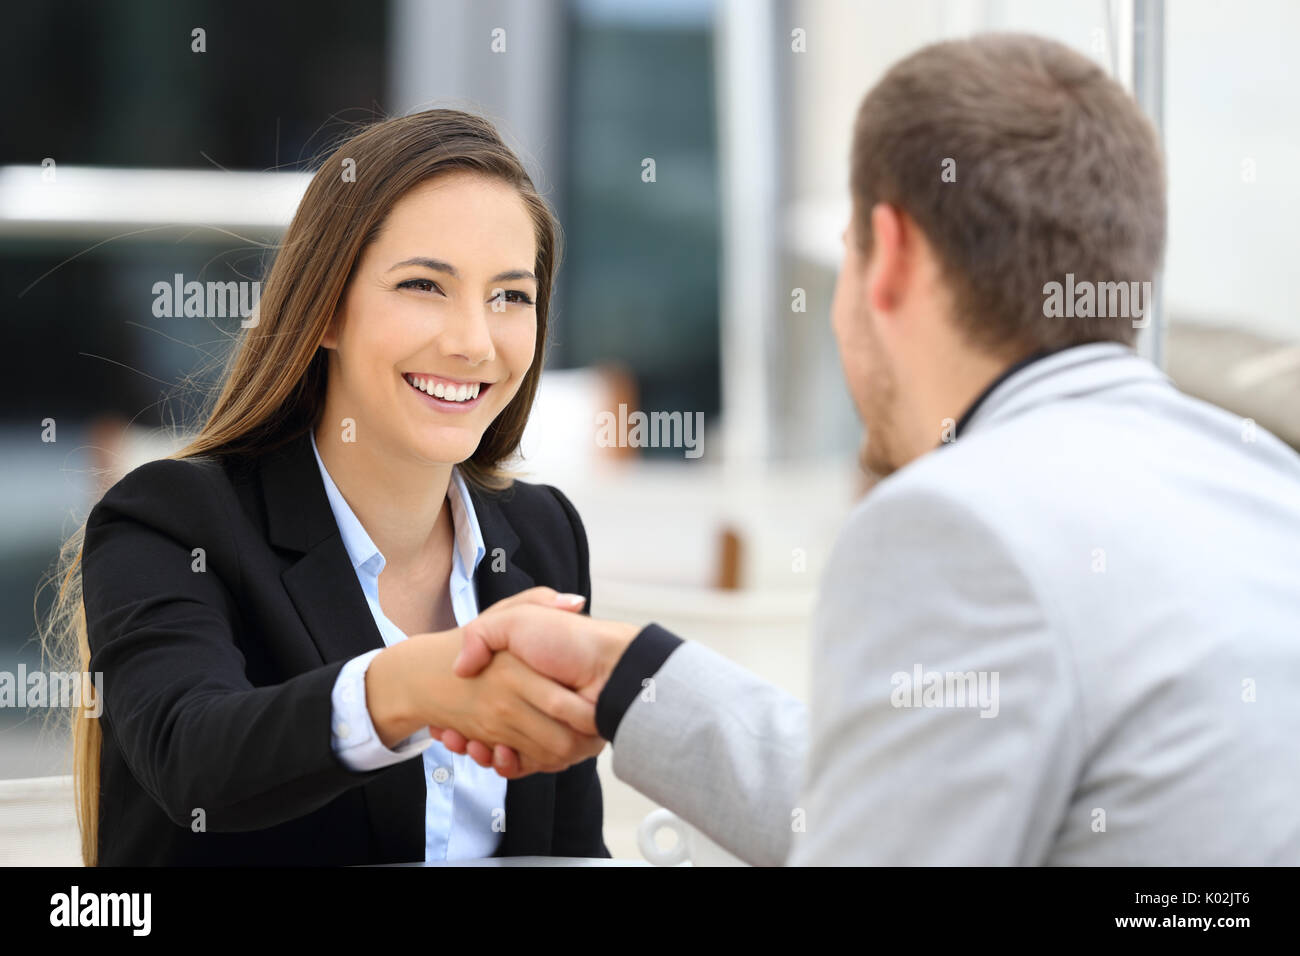 Two executives meeting and handshaking sitting in a coffee shop Stock Photo